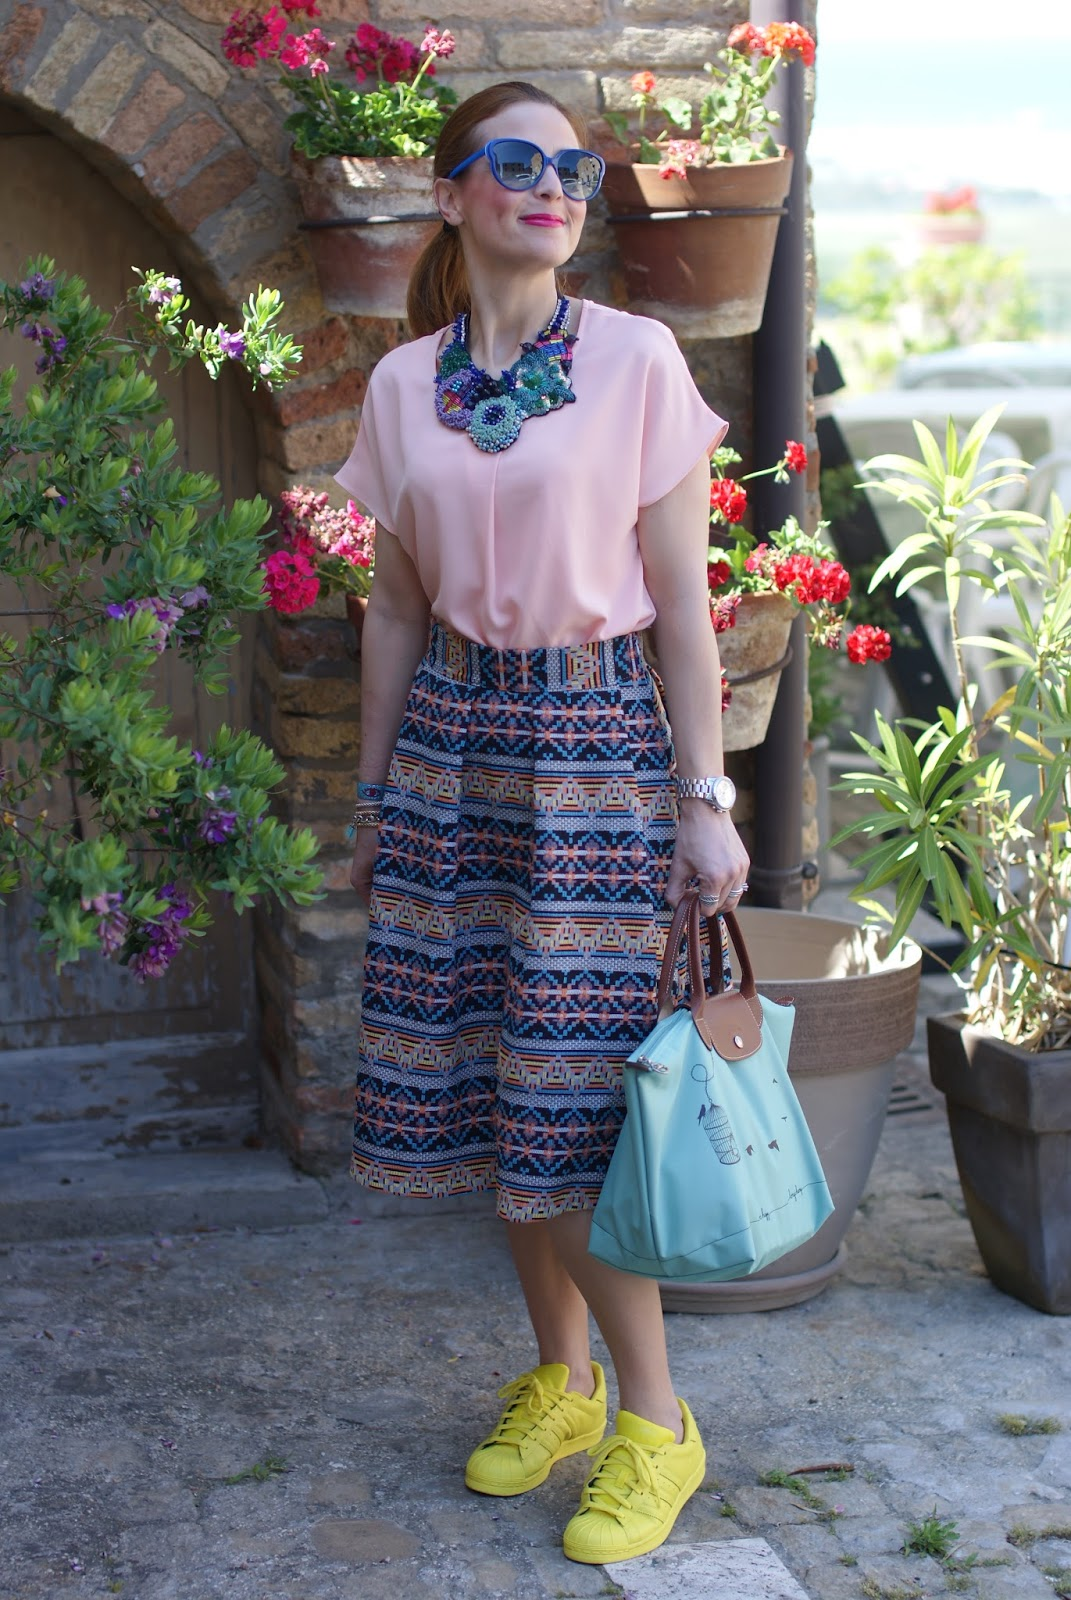 Le Pliage 2015, Longchamp Le Pliage cage aux oiseaux bag, jacquard midi skirt, adidas supercolor gialle, simonab bijoux necklace, Fashion and Cookies fashion blog